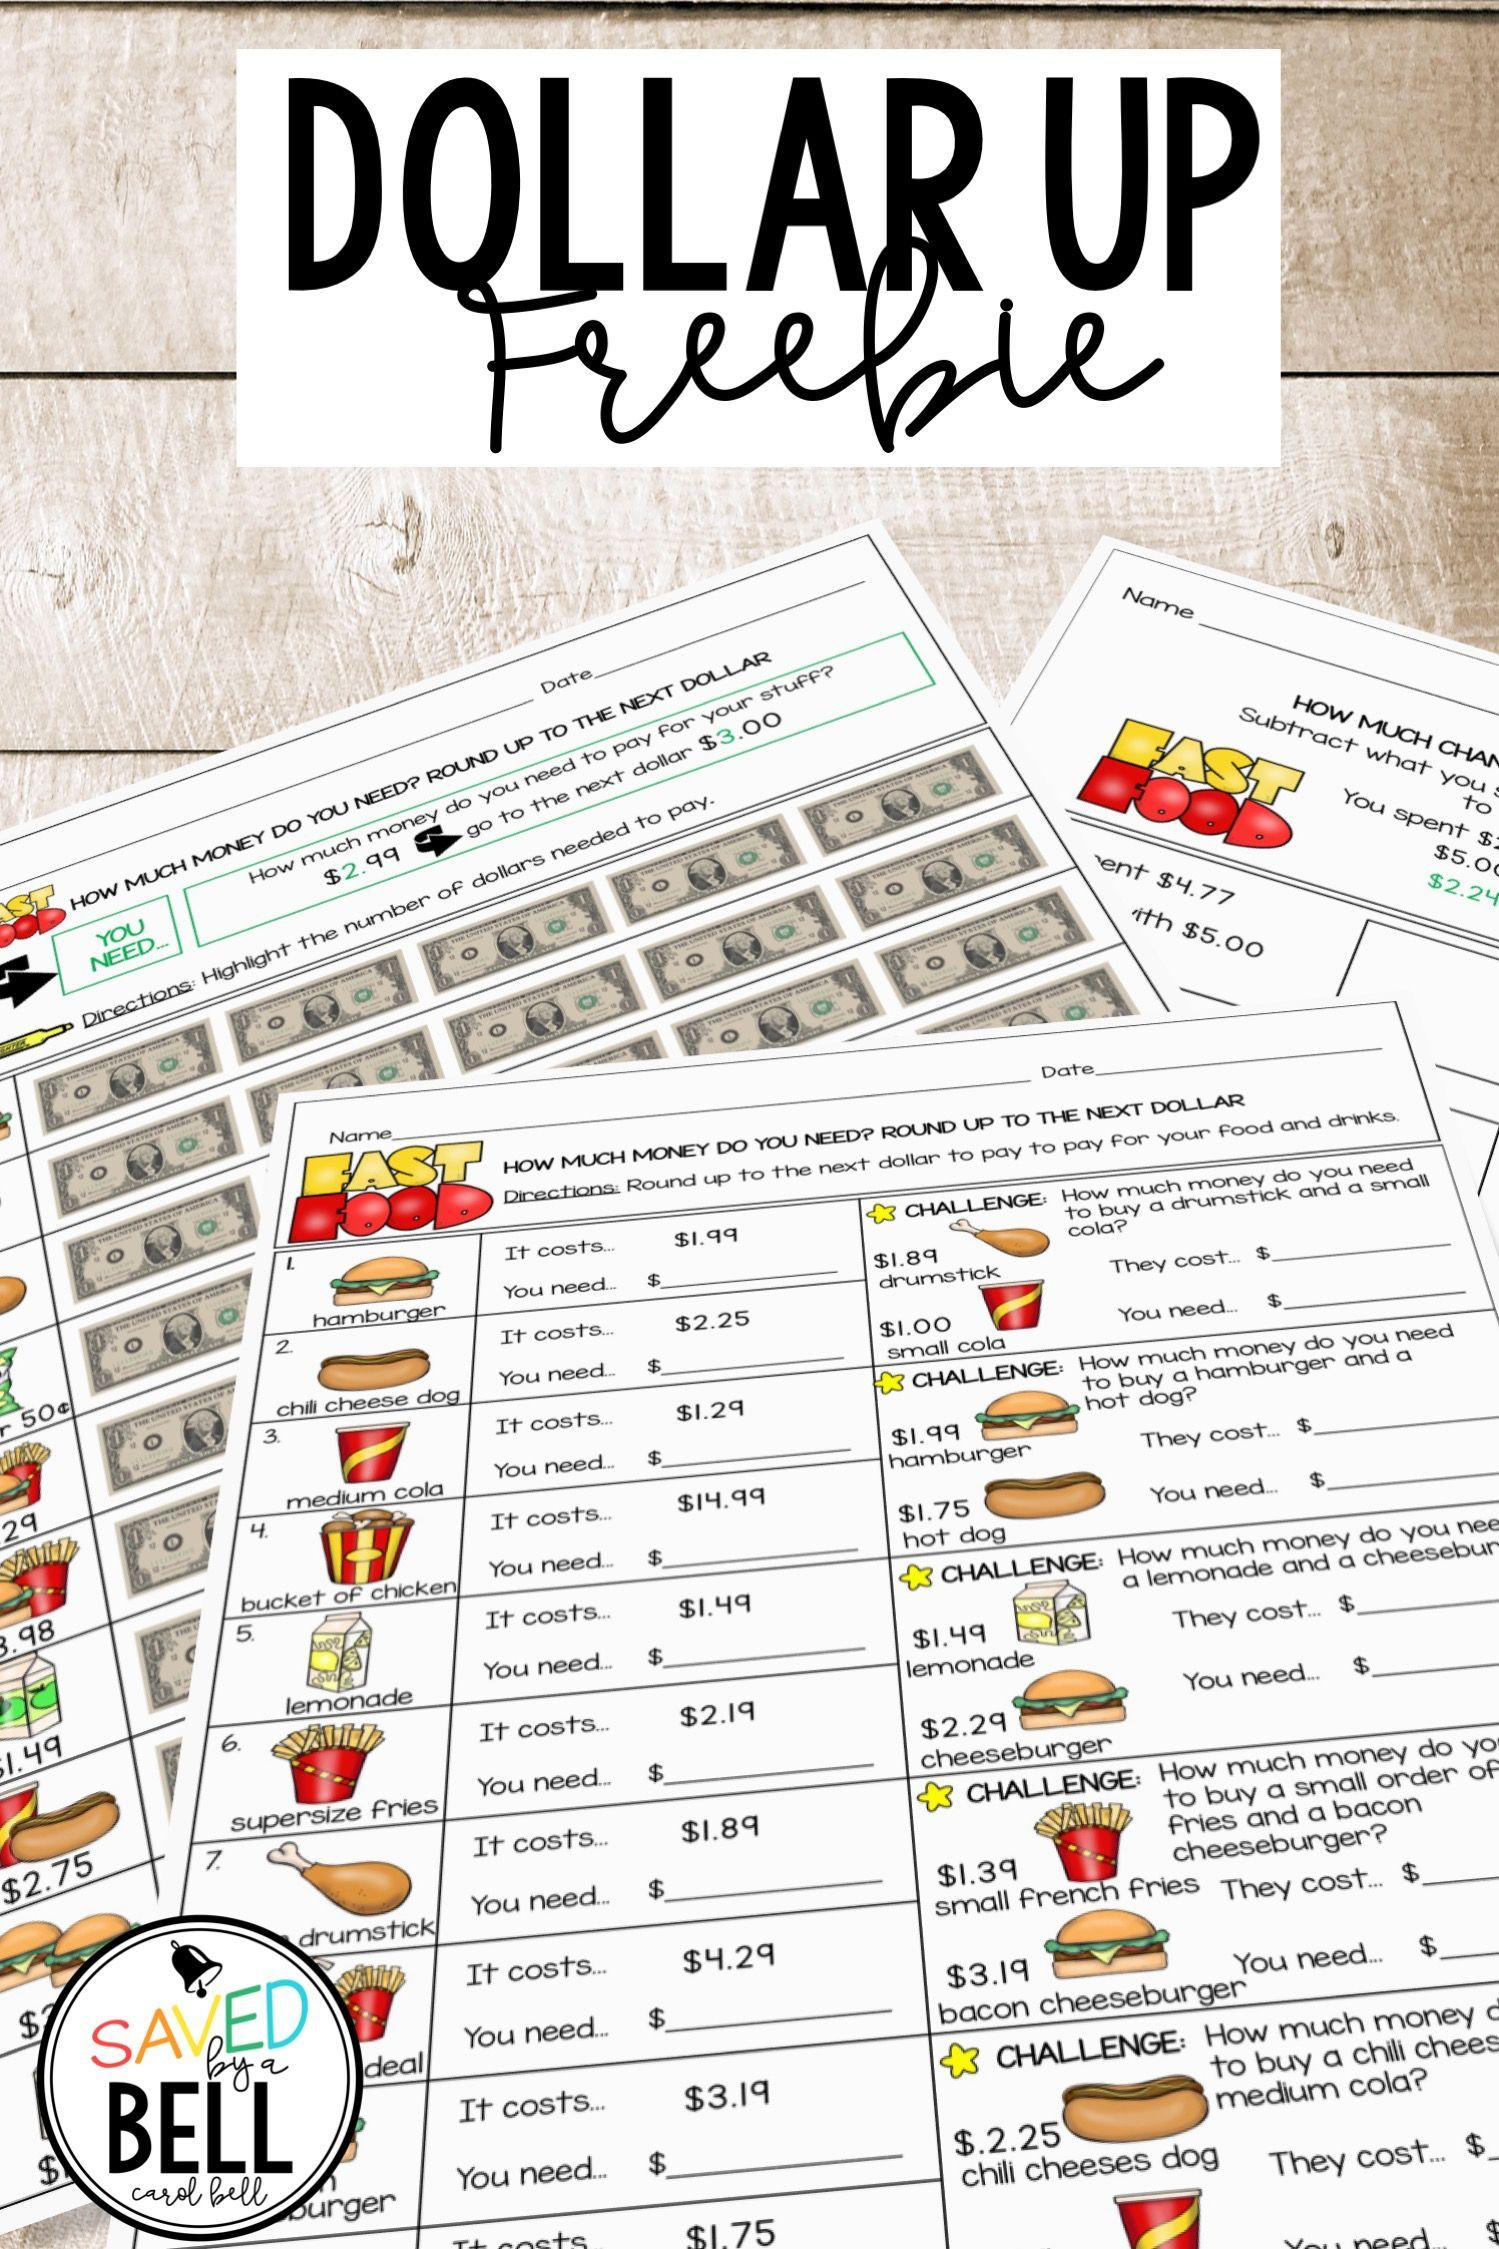 Next Dollar Up And Subtract For Change A Menu Math Freebie